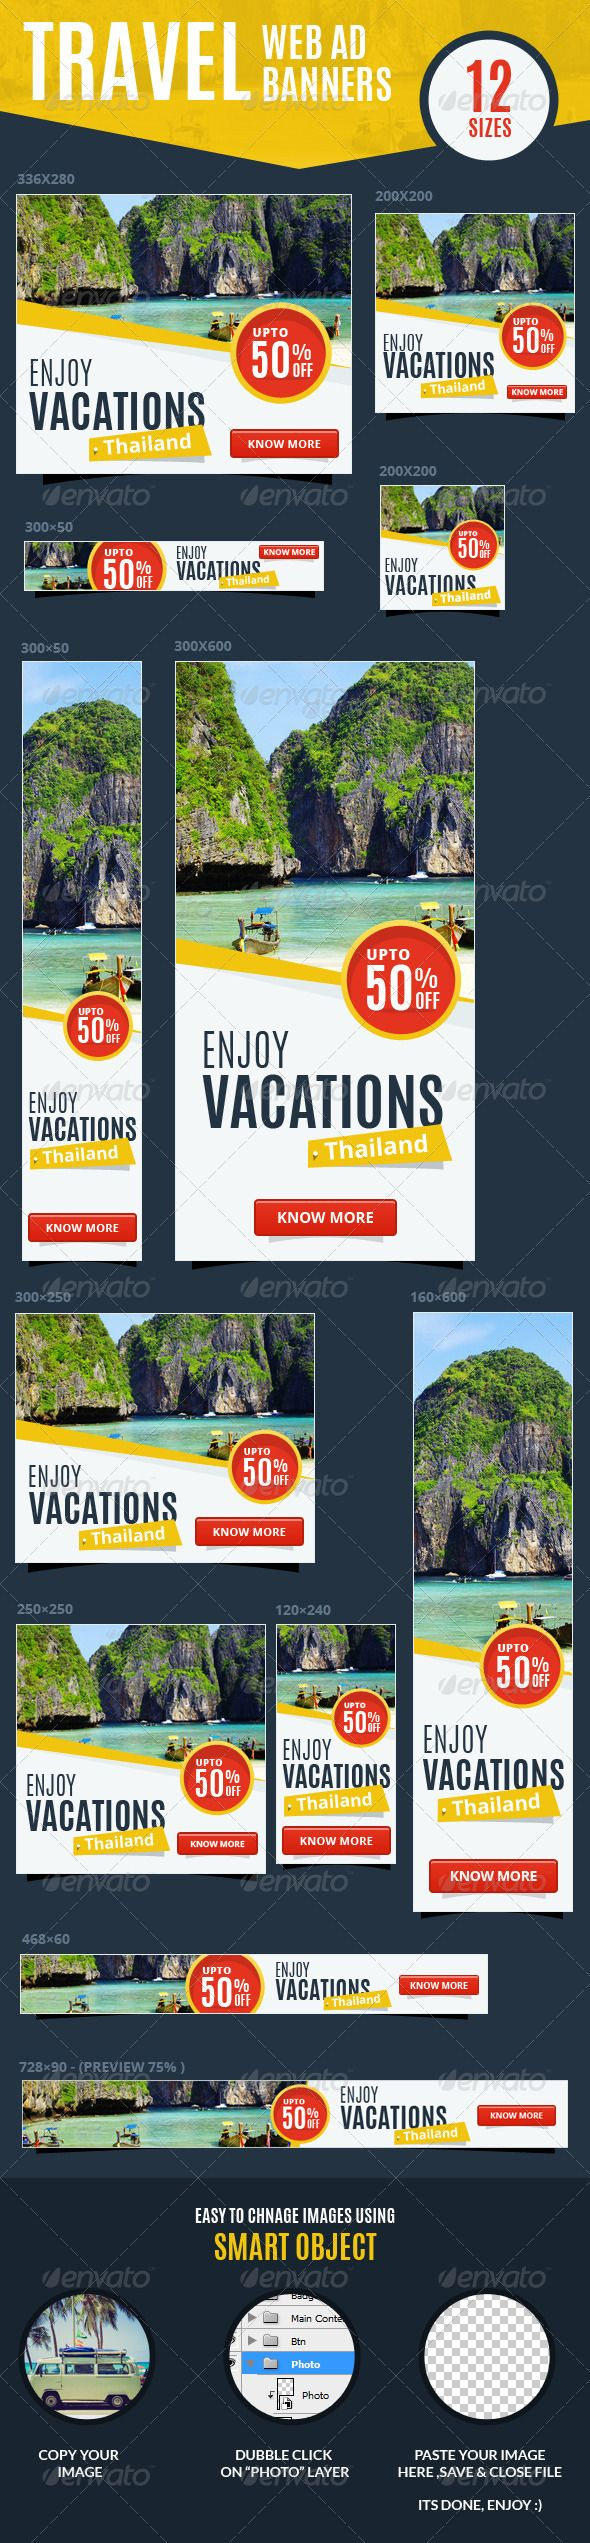 Multipurpose Travel & Vacations Web Ad Banners - Banners & Ads Web Elements